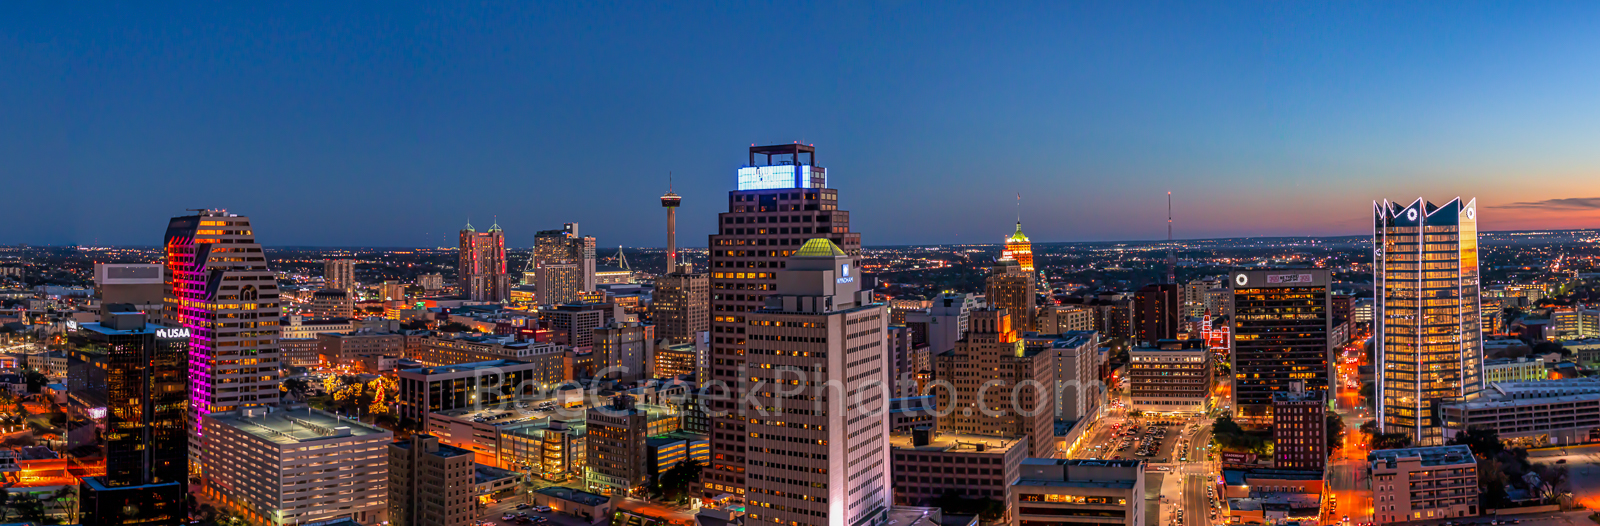 San Antonio Skyline, Night, Panorama, pano, Frost Tower, Marriott, Grand Hyatt, Tower of the Americas, hemisphere, drury hotel, downtown, San Antonio, texas, , Frost Tower, Frost, building, cityscape,, photo